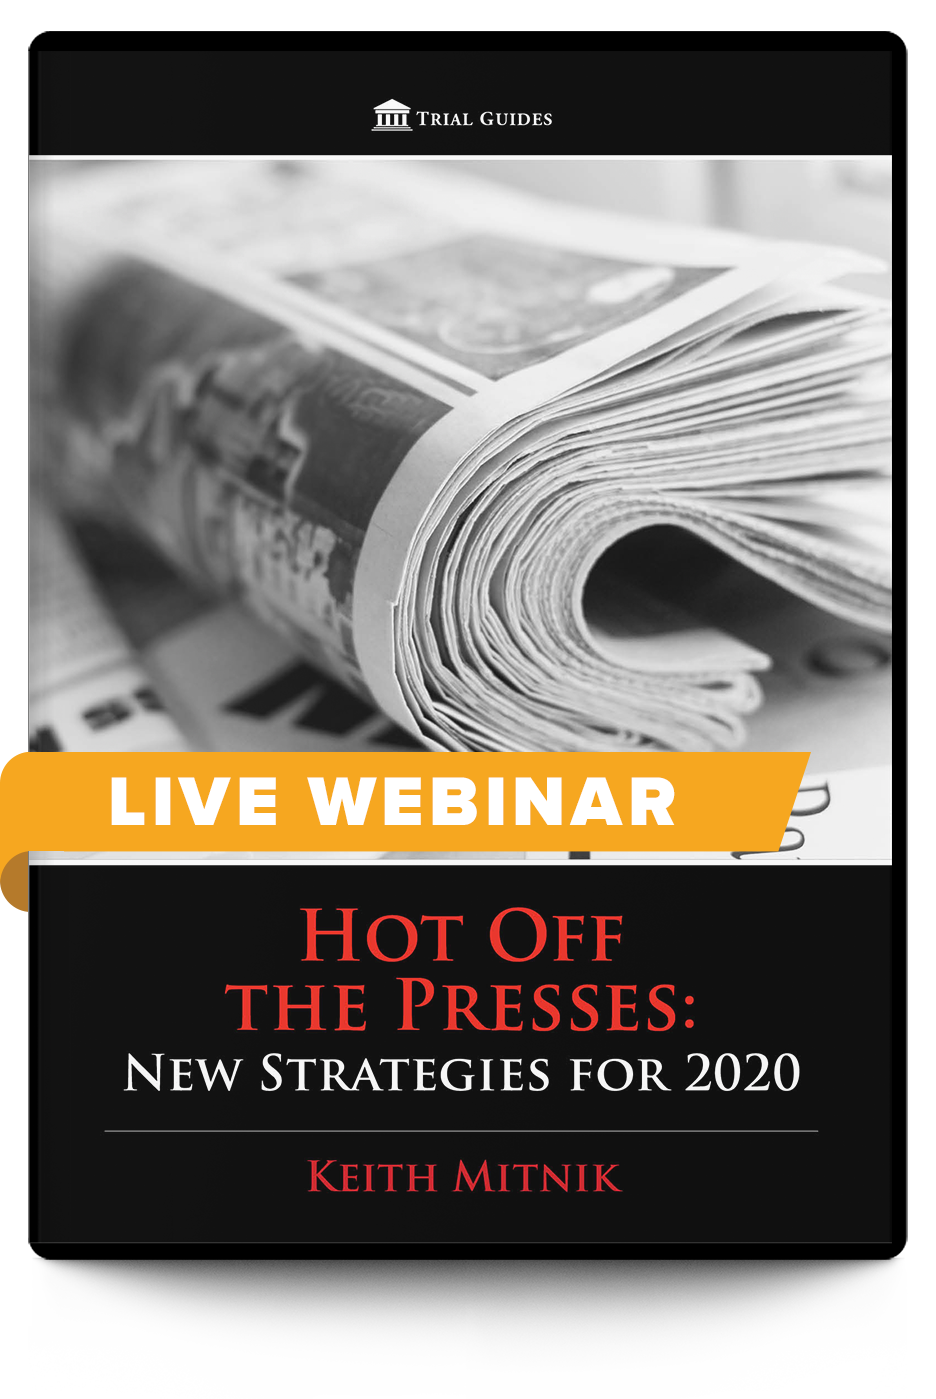 Hot Off the Presses: New Strategies for 2020 - Live Webinar